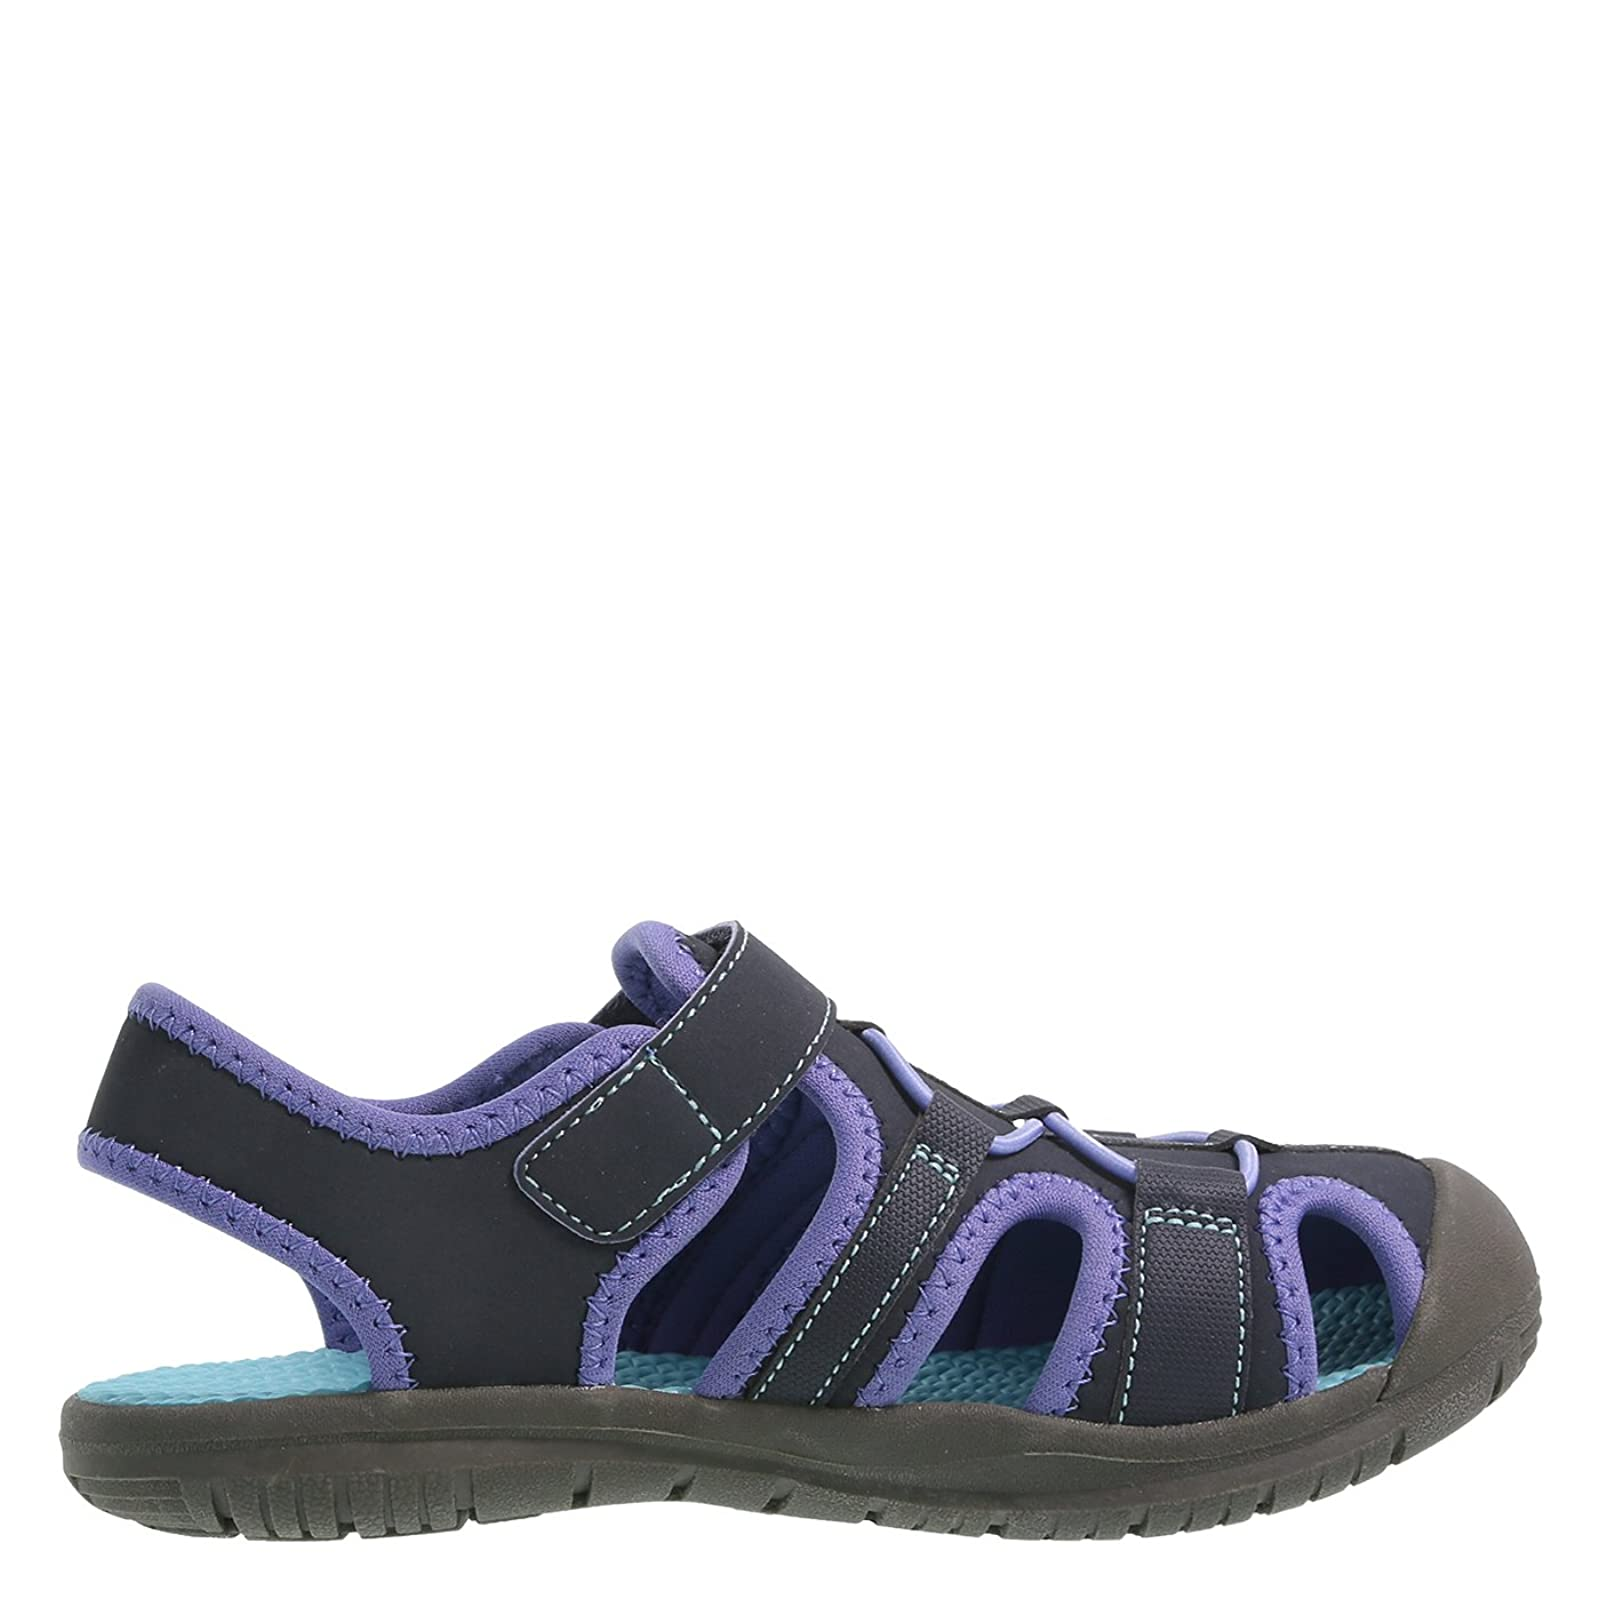 Rugged Outback Girls' Marina Bumptoe Sandal 7 M US - 1